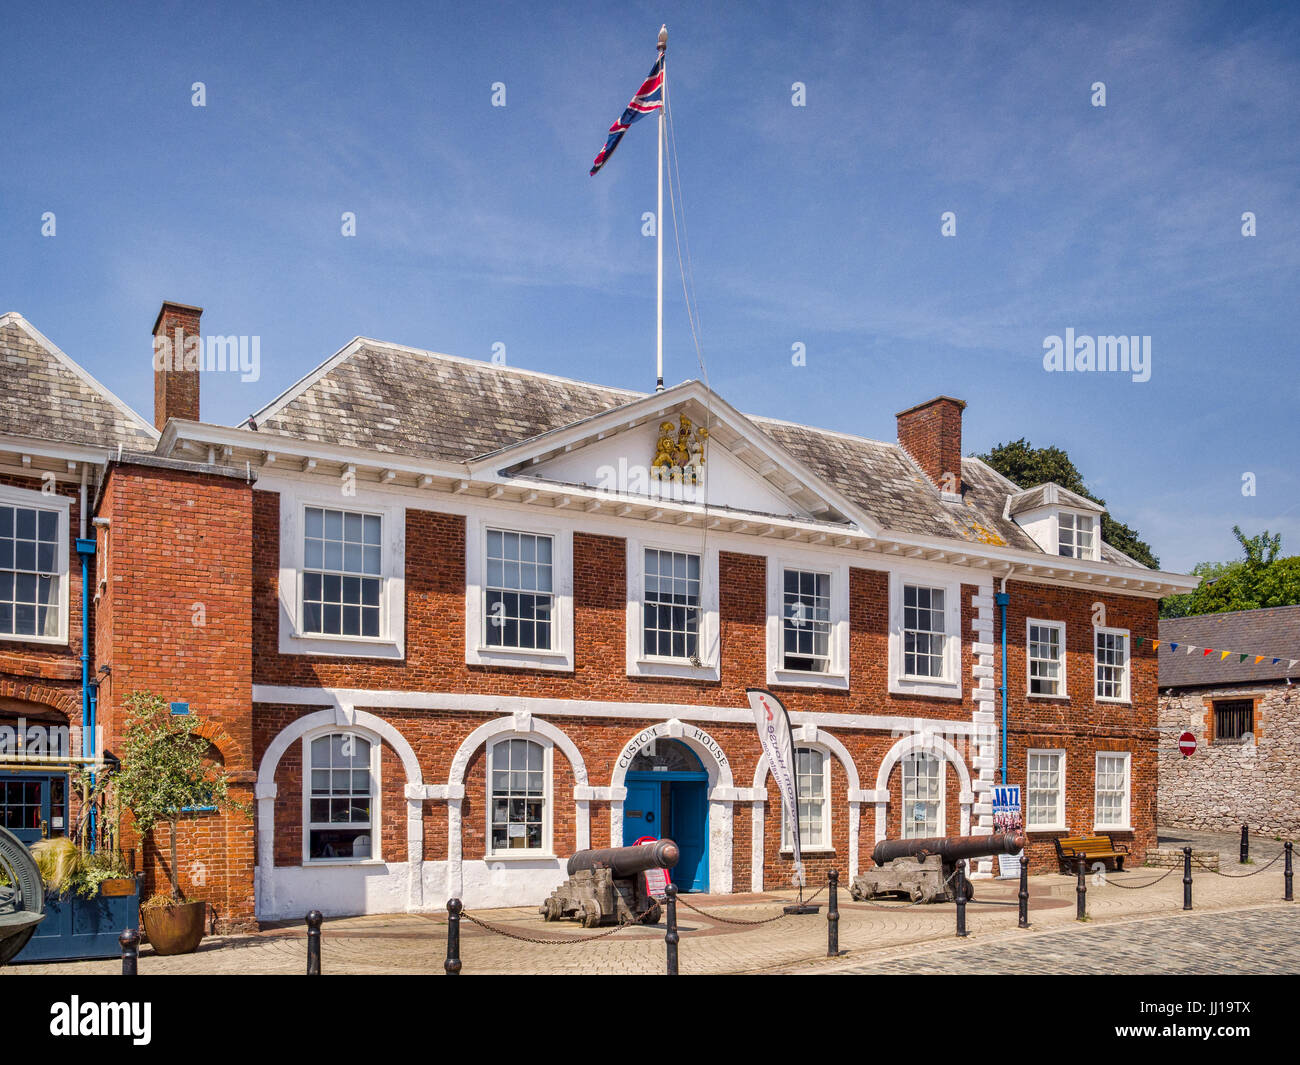 21 June 2017: Exeter, Devon, England, UK - The Custom House, one of the historic buildings at Exeter Quay on a fine - Stock Image